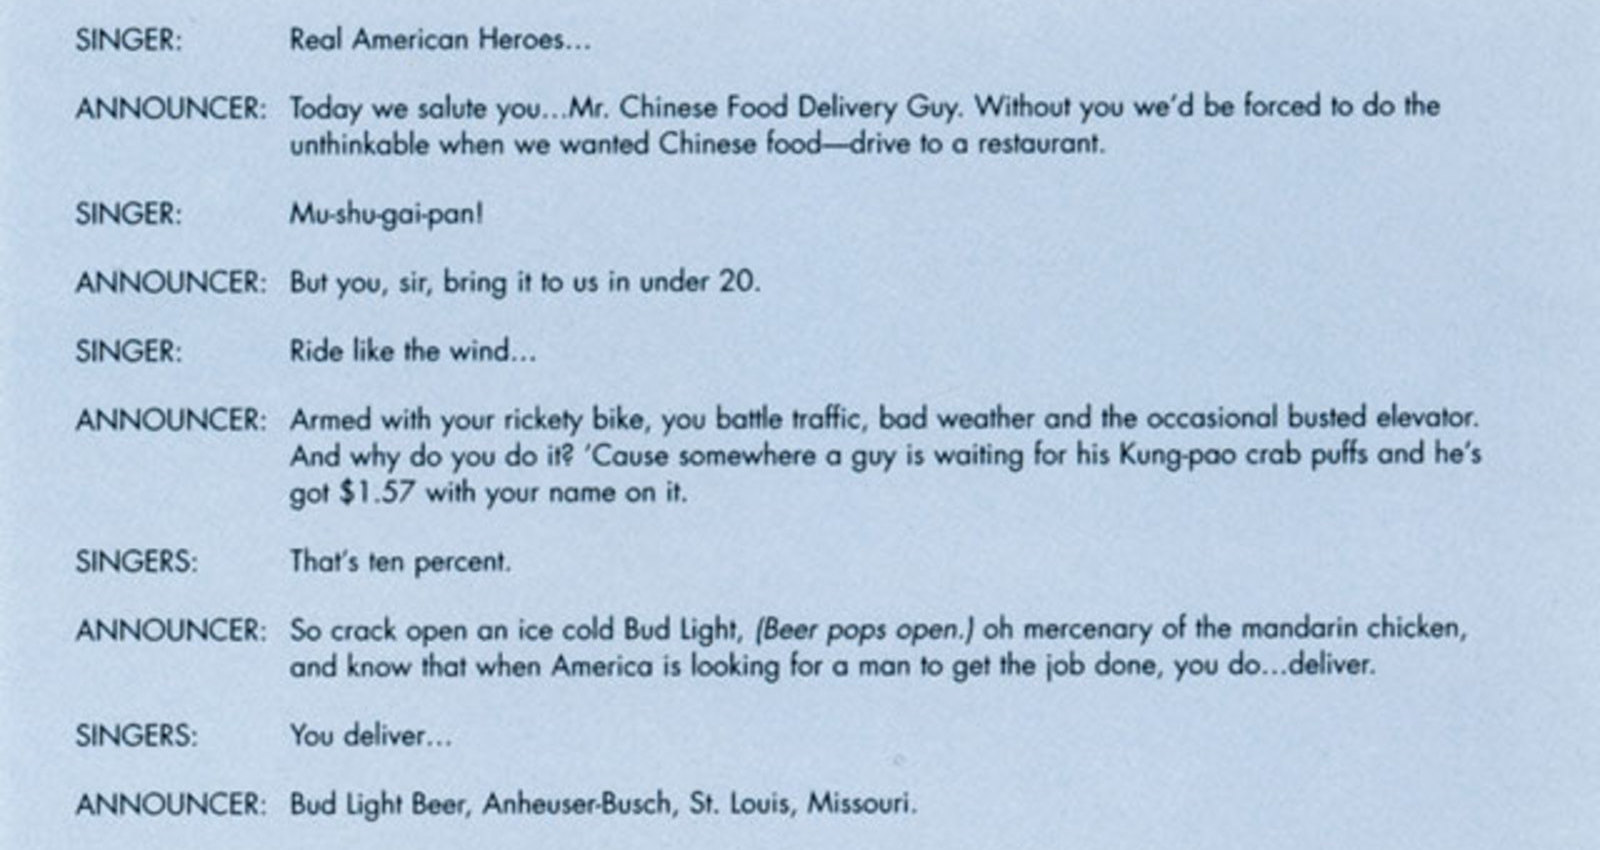 Heroes / Mr. Chinese Food Delivery